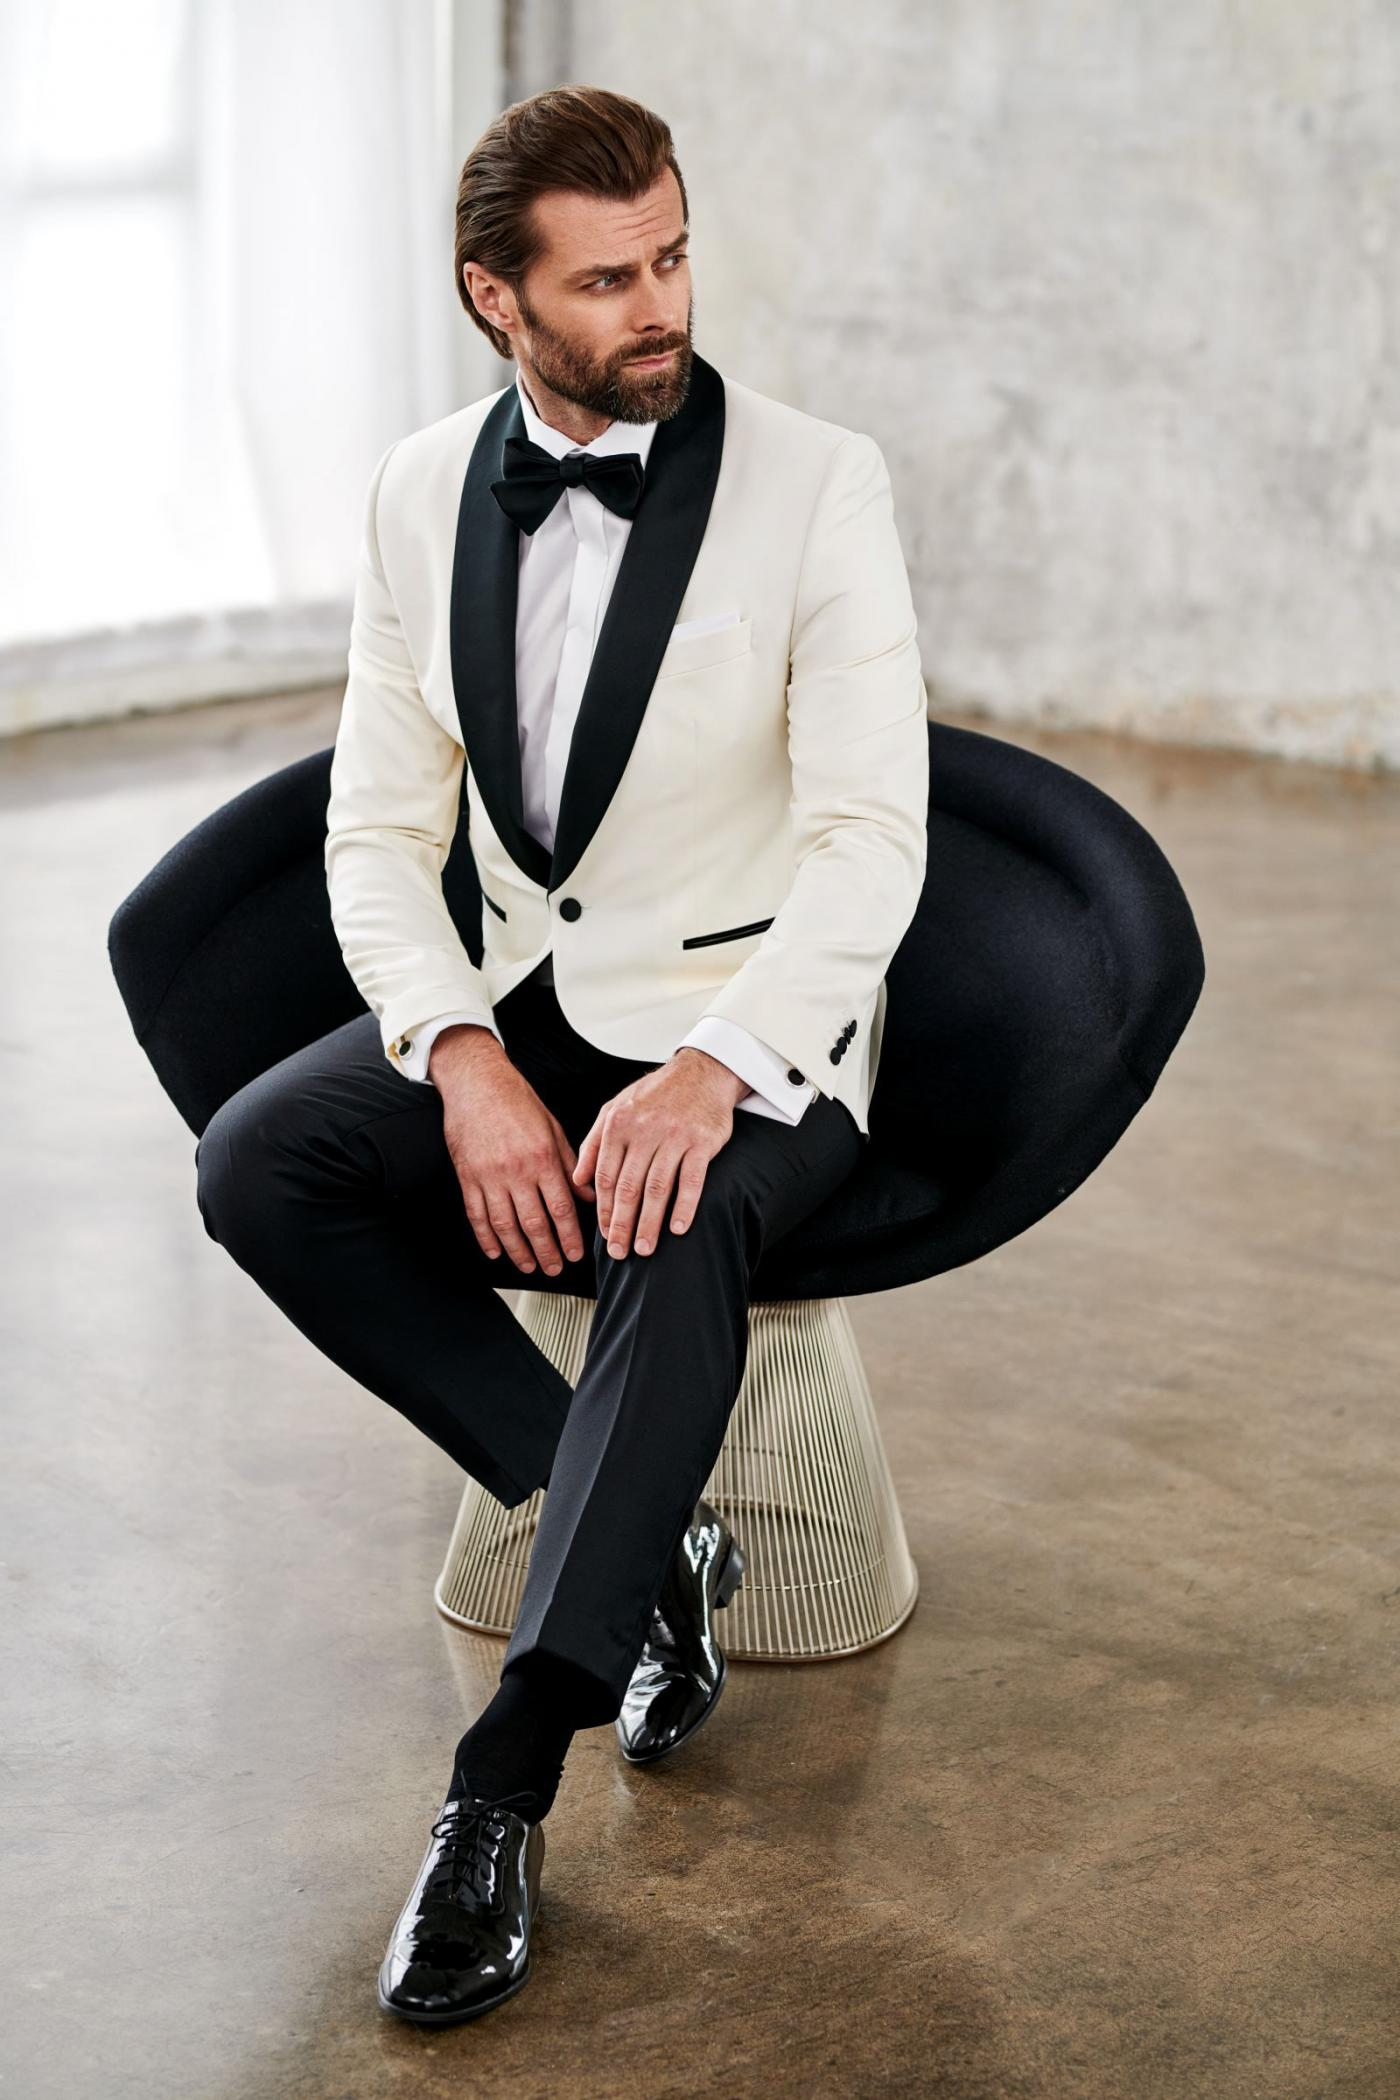 Holiday men's look in classic colours: white jacket, black pants and black patent shoes